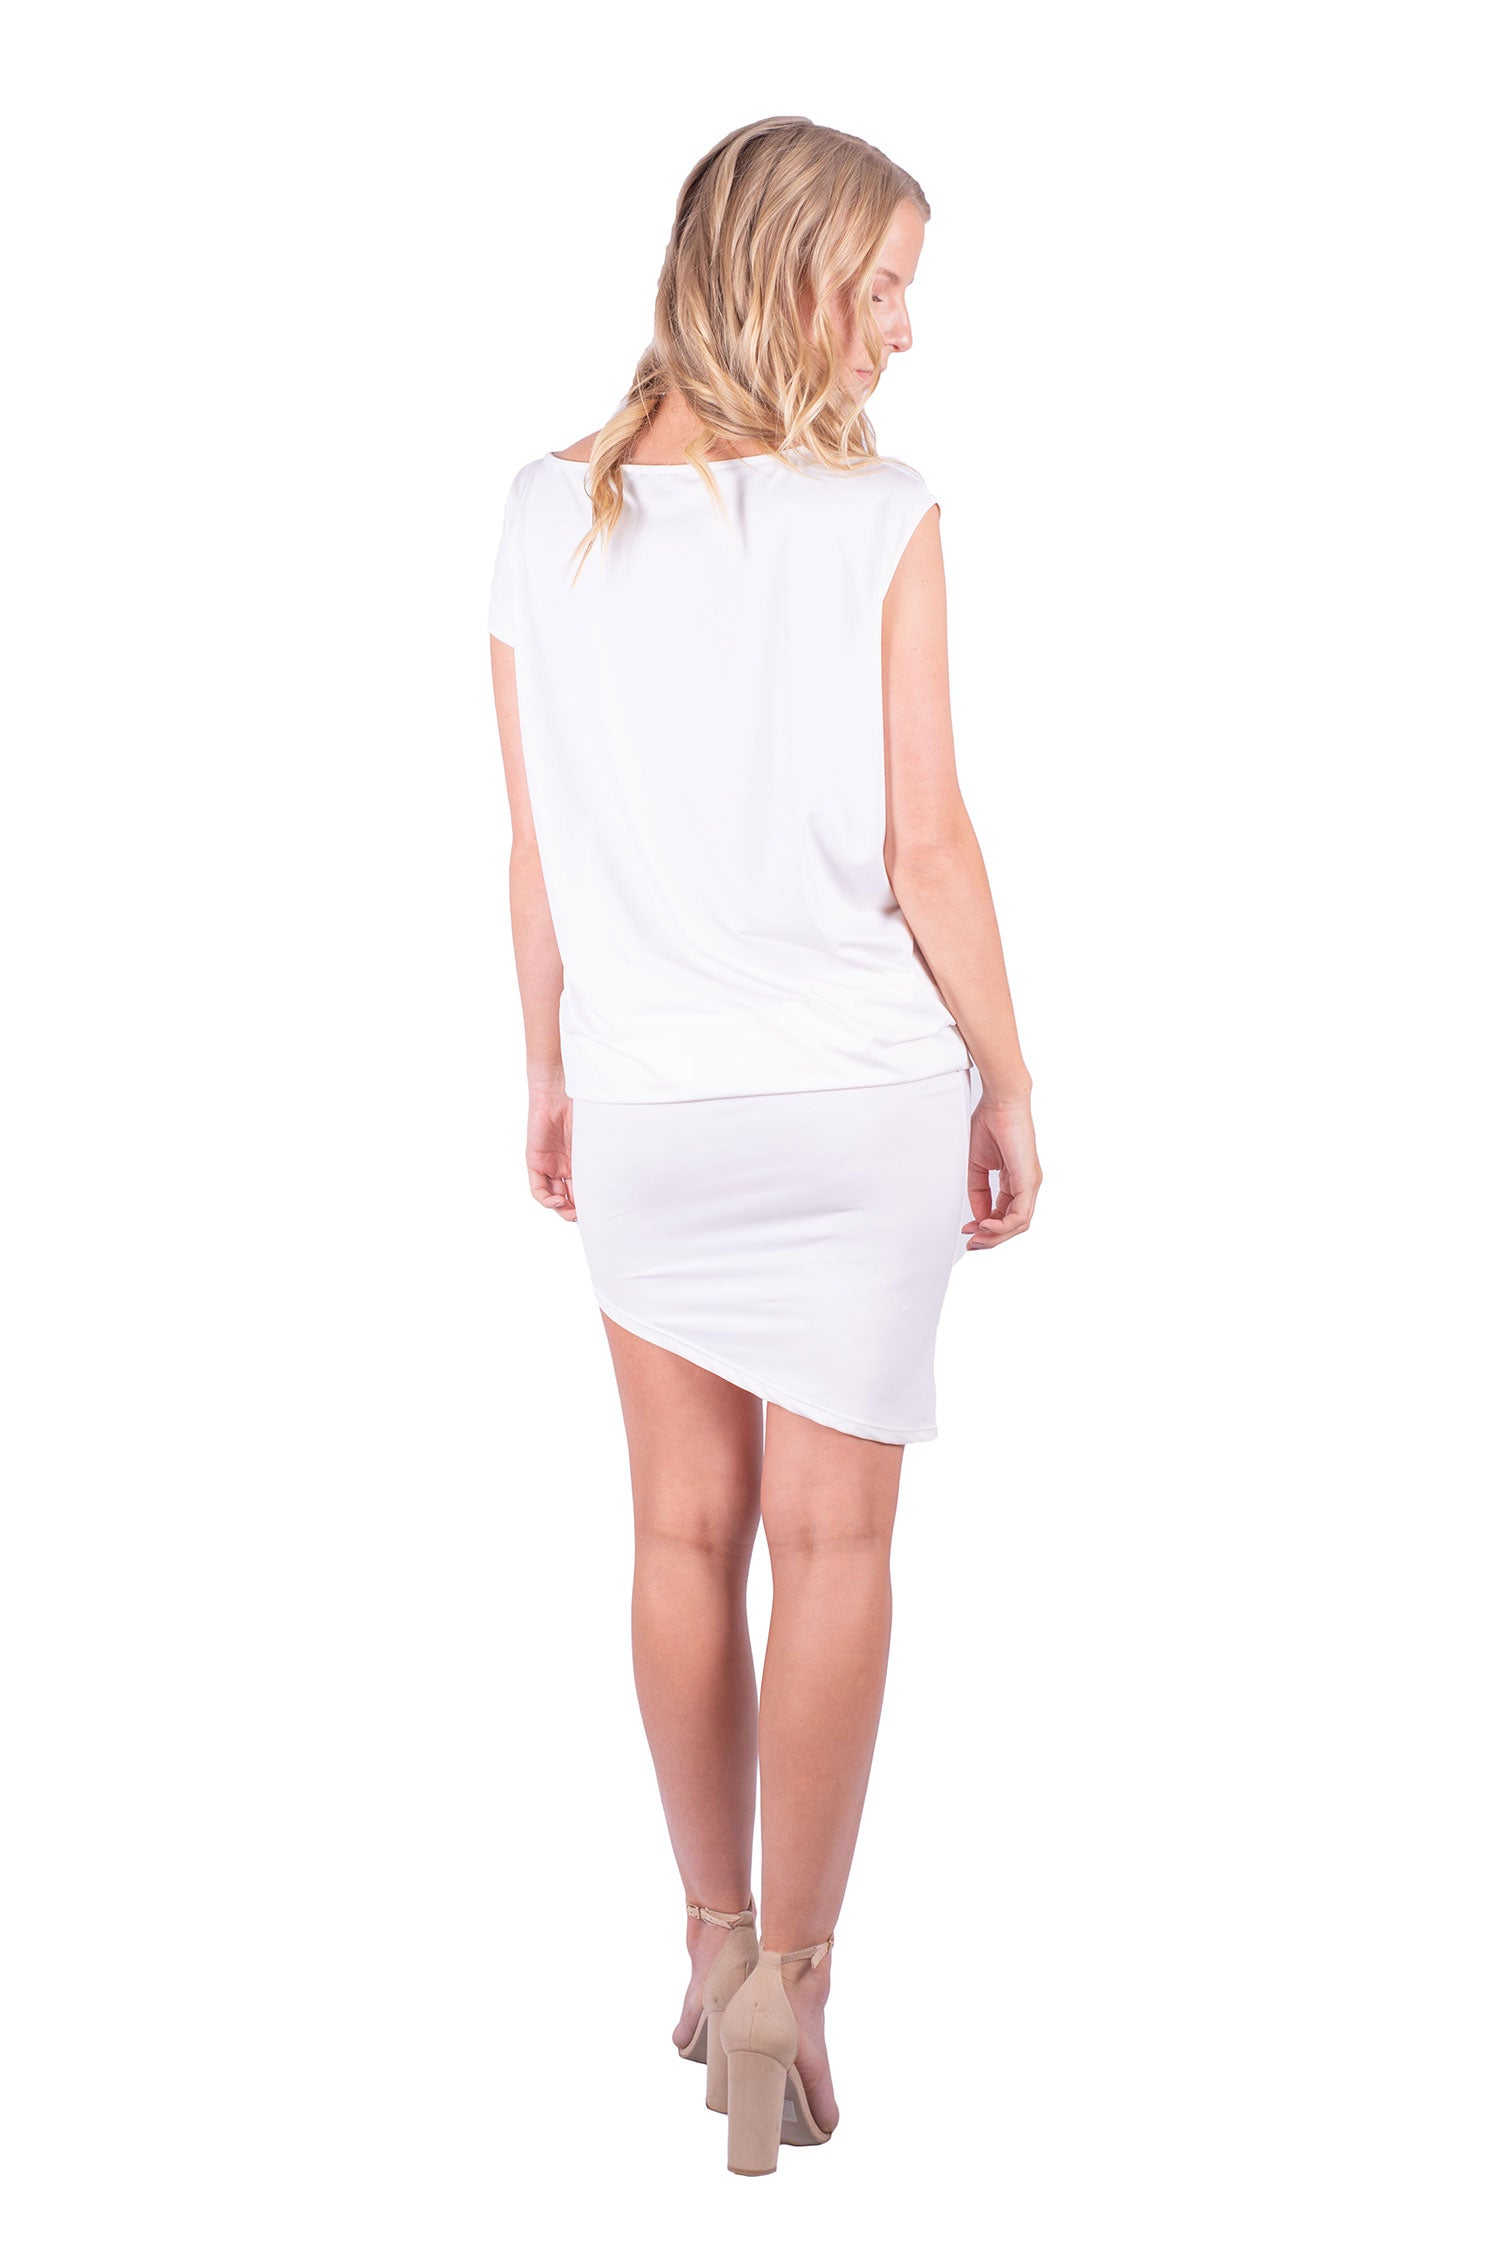 Cape Cod Dress - Luminora